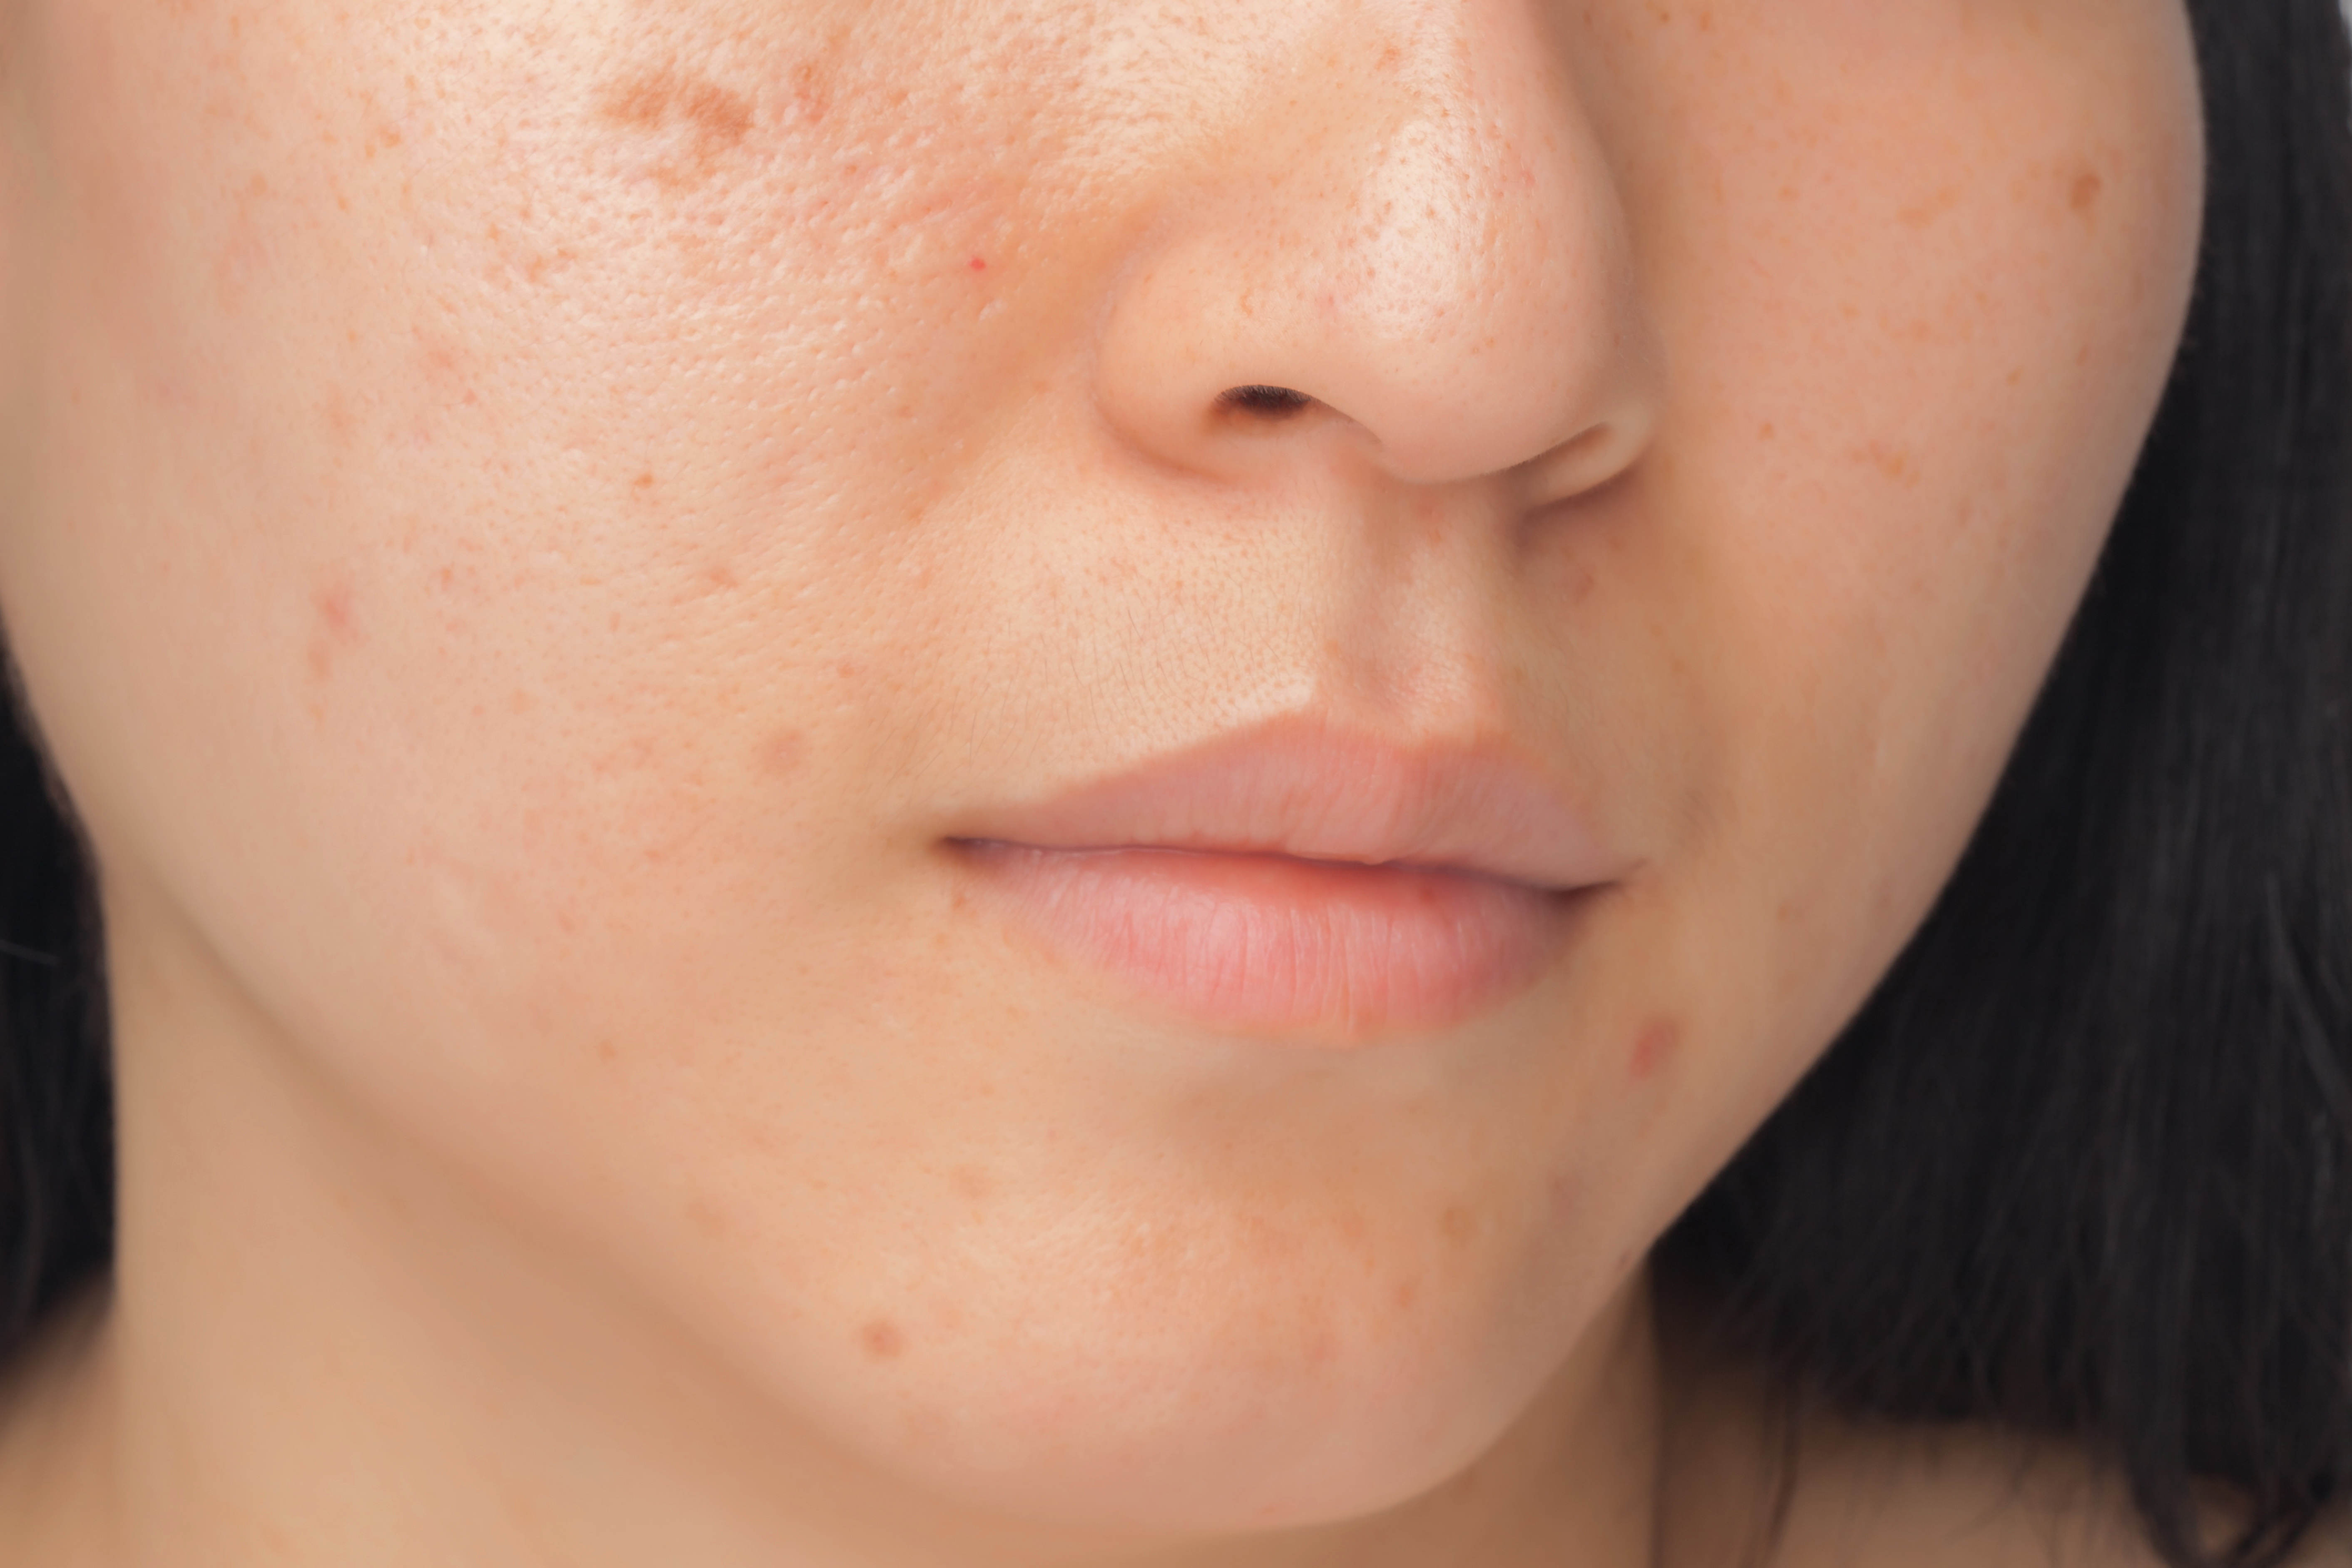 does acne matter